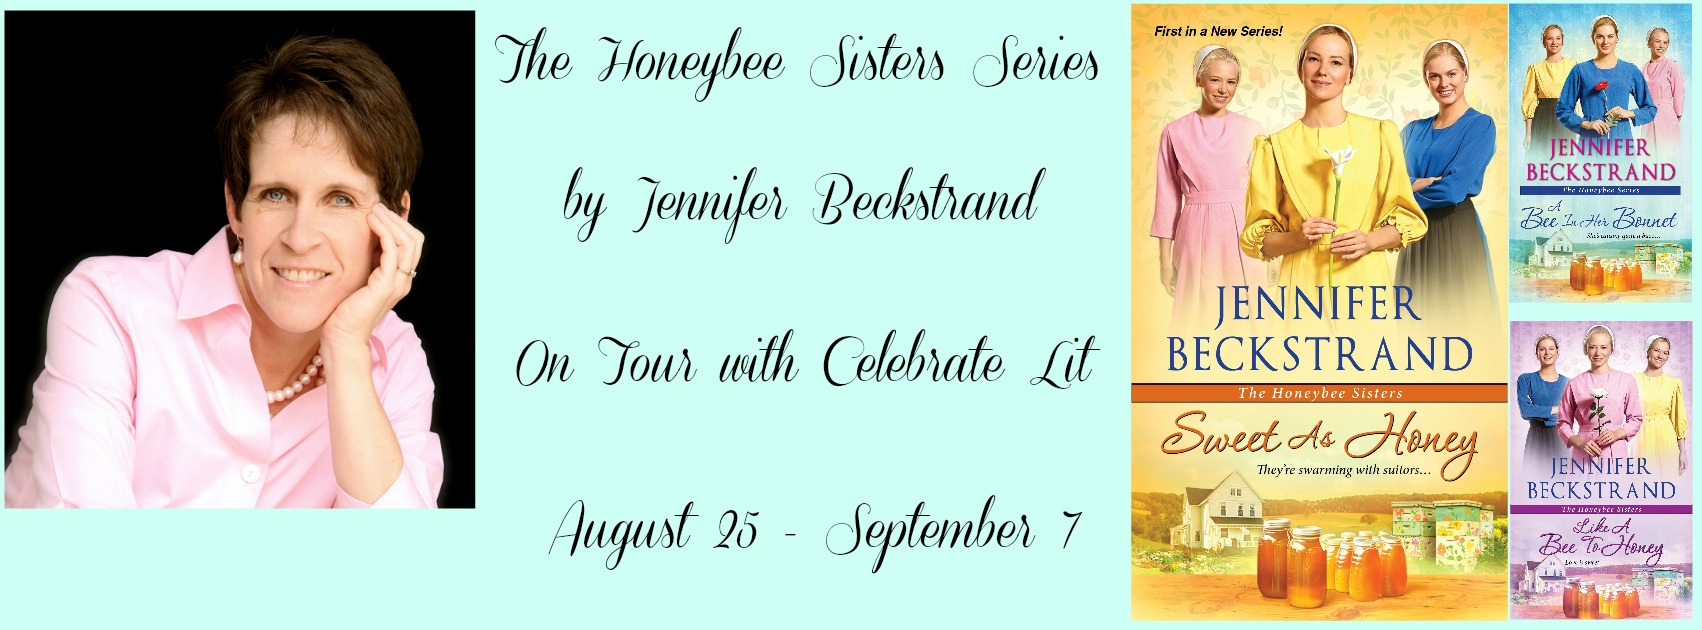 The Honeybee Sisters Series Banner